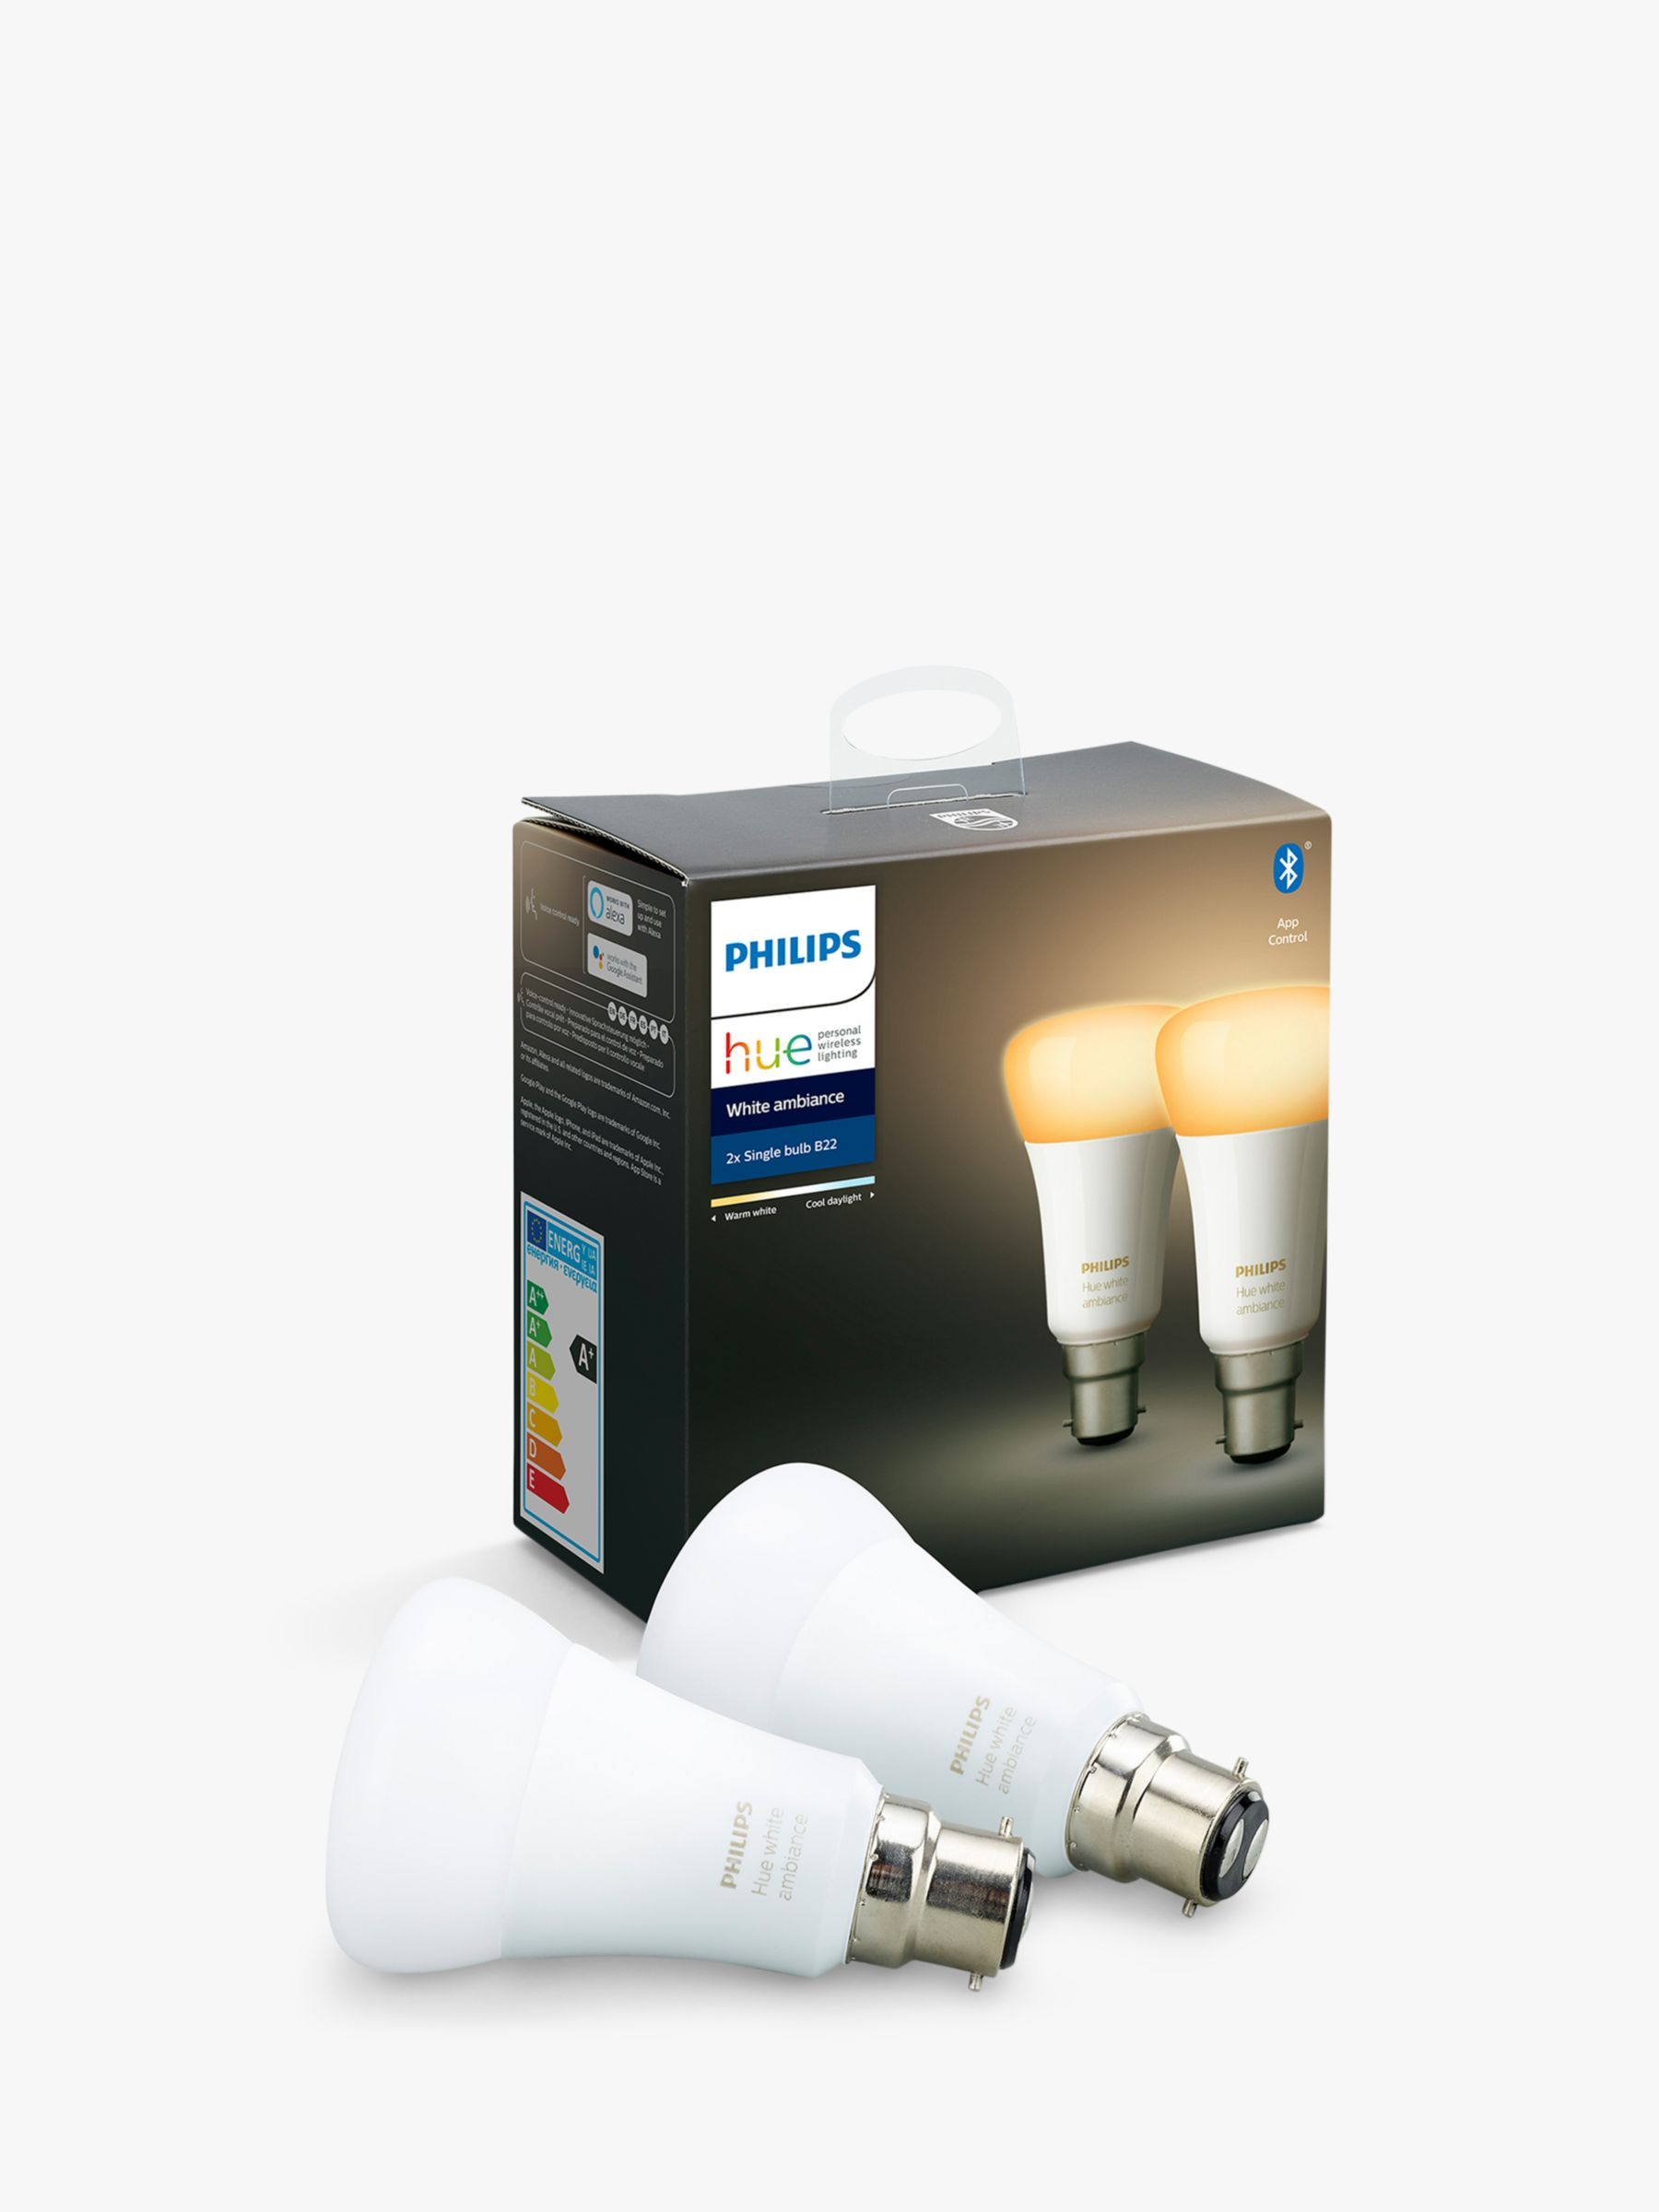 Philips Philips Hue White Ambiance Wireless Lighting LED Light Bulb with Bluetooth, 9W A60 B22 Bayonet Cap Bulb, Pack of 2